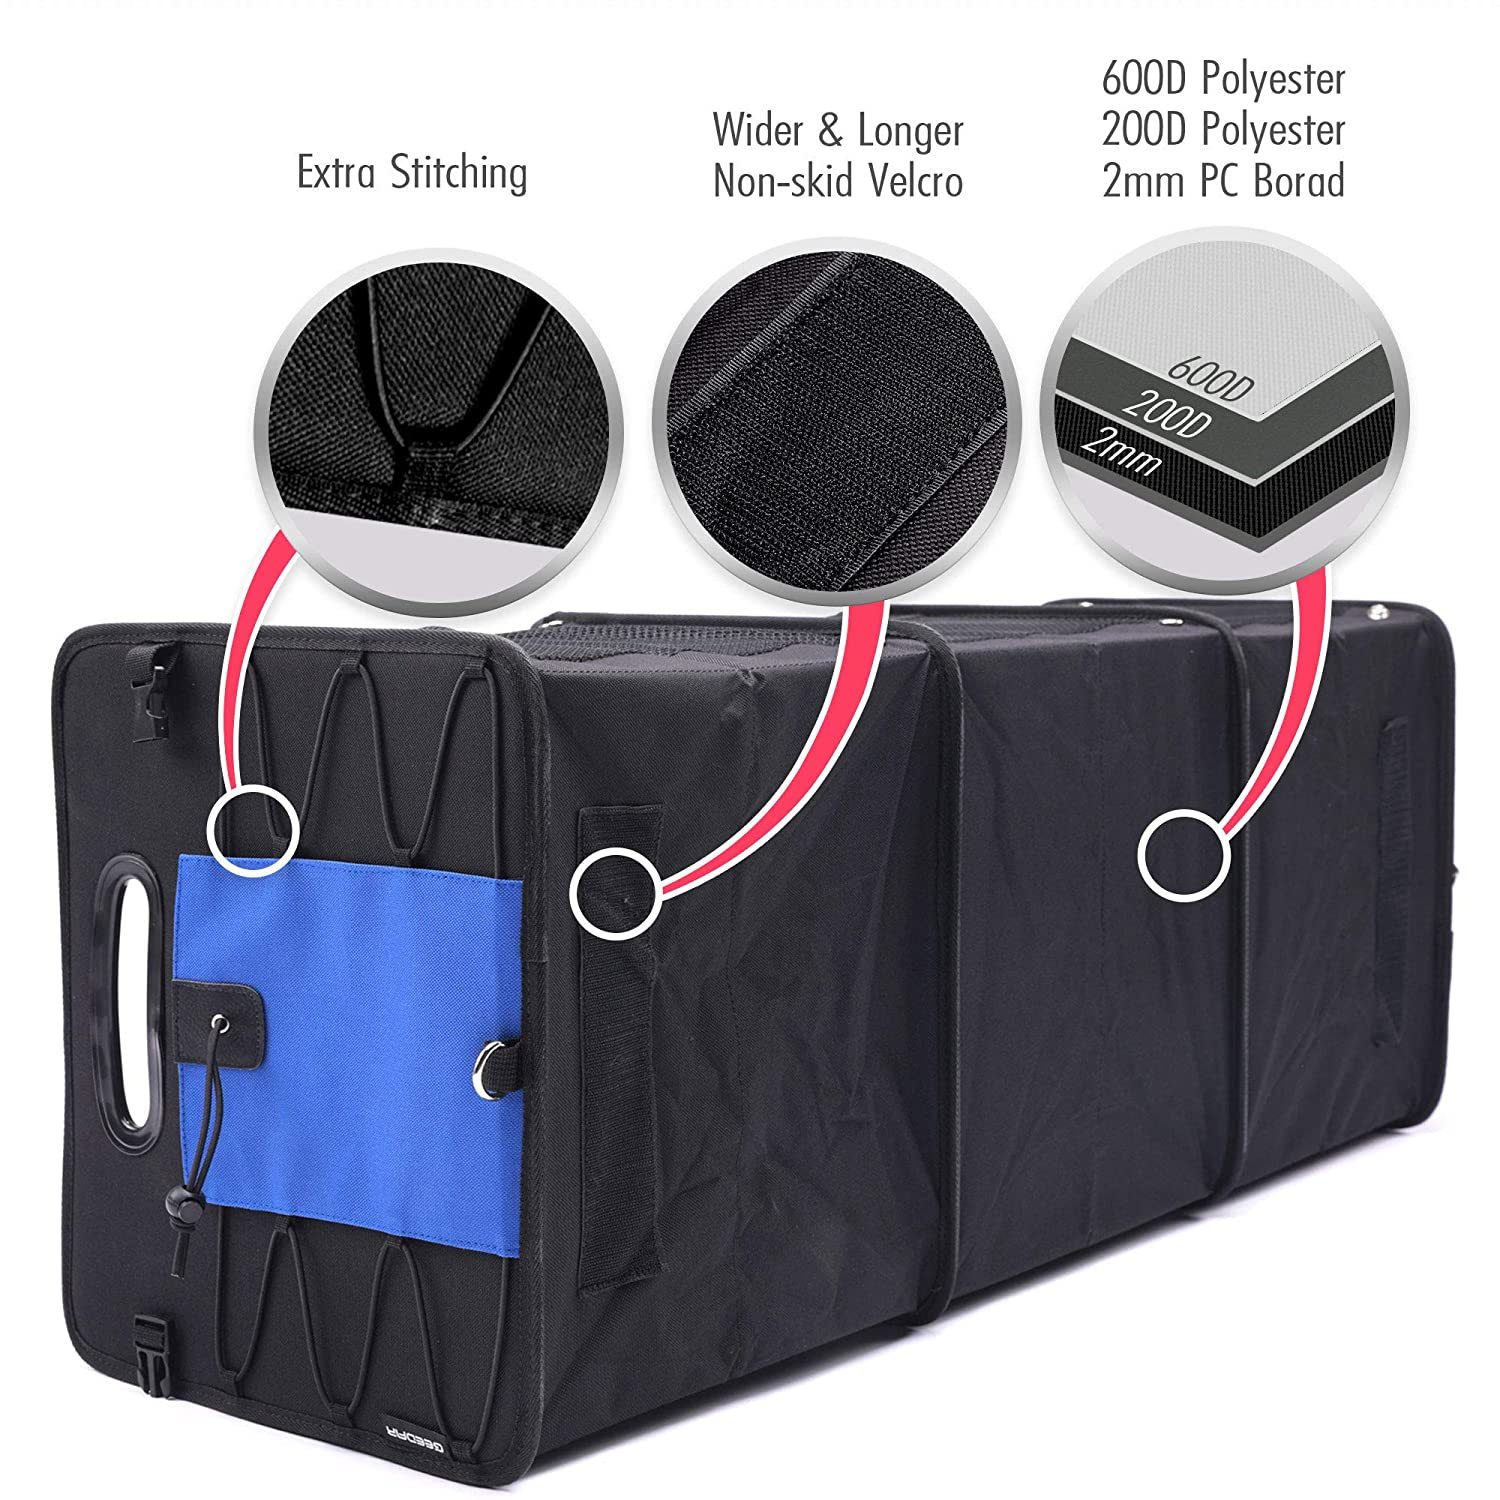 Blue 3 Large Compartments Collapsible Portable Non-Slip Bottom with Tie Down Straps GEEDAR Trunk Organizer for Car SUV Trunk Organizers and Storage